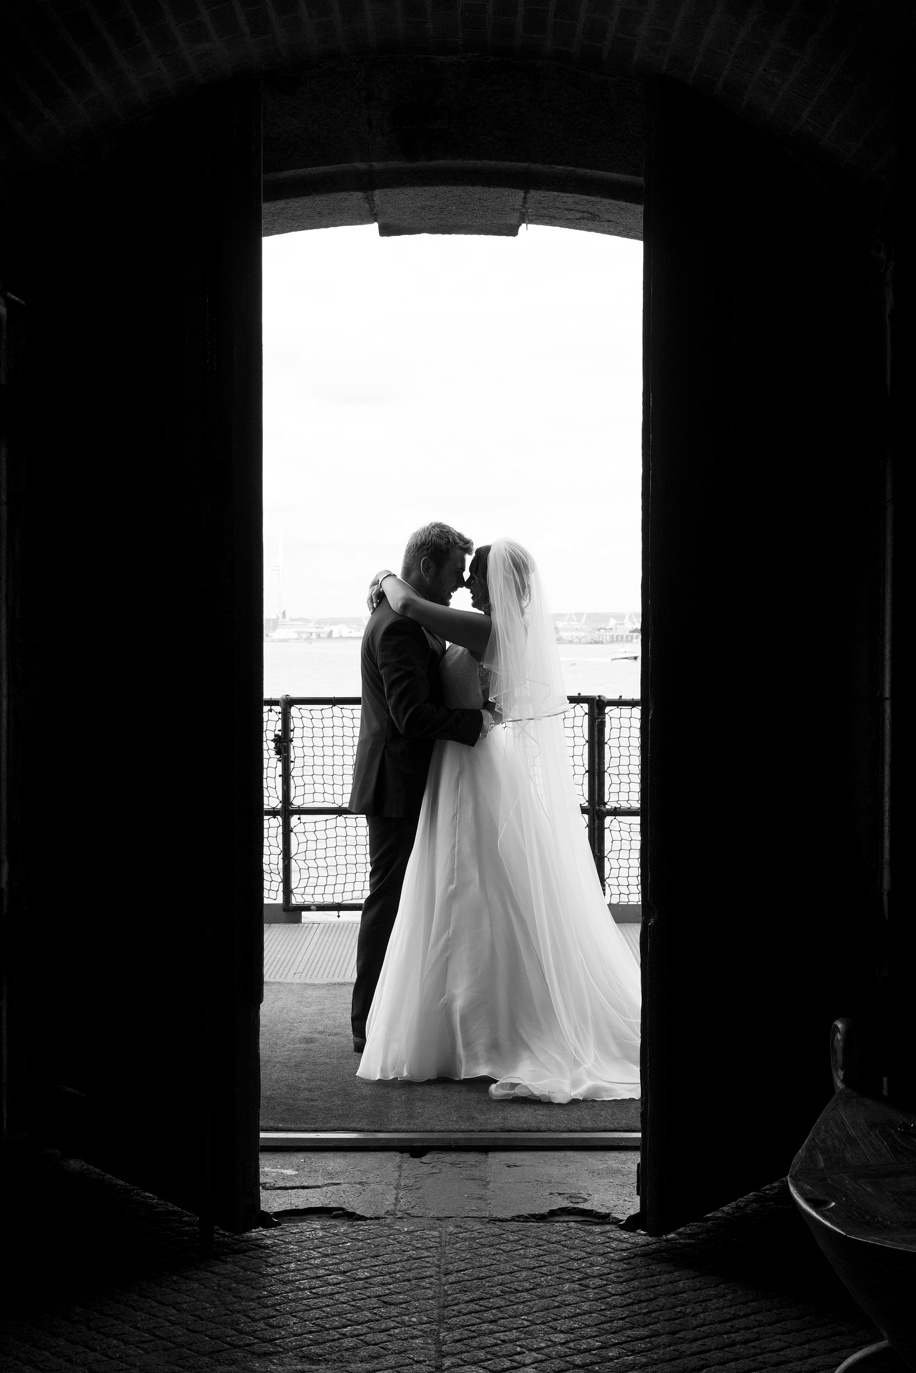 Spitbank Fort wedding photography - Bride and Groom by entrance - Martin Bell Photography